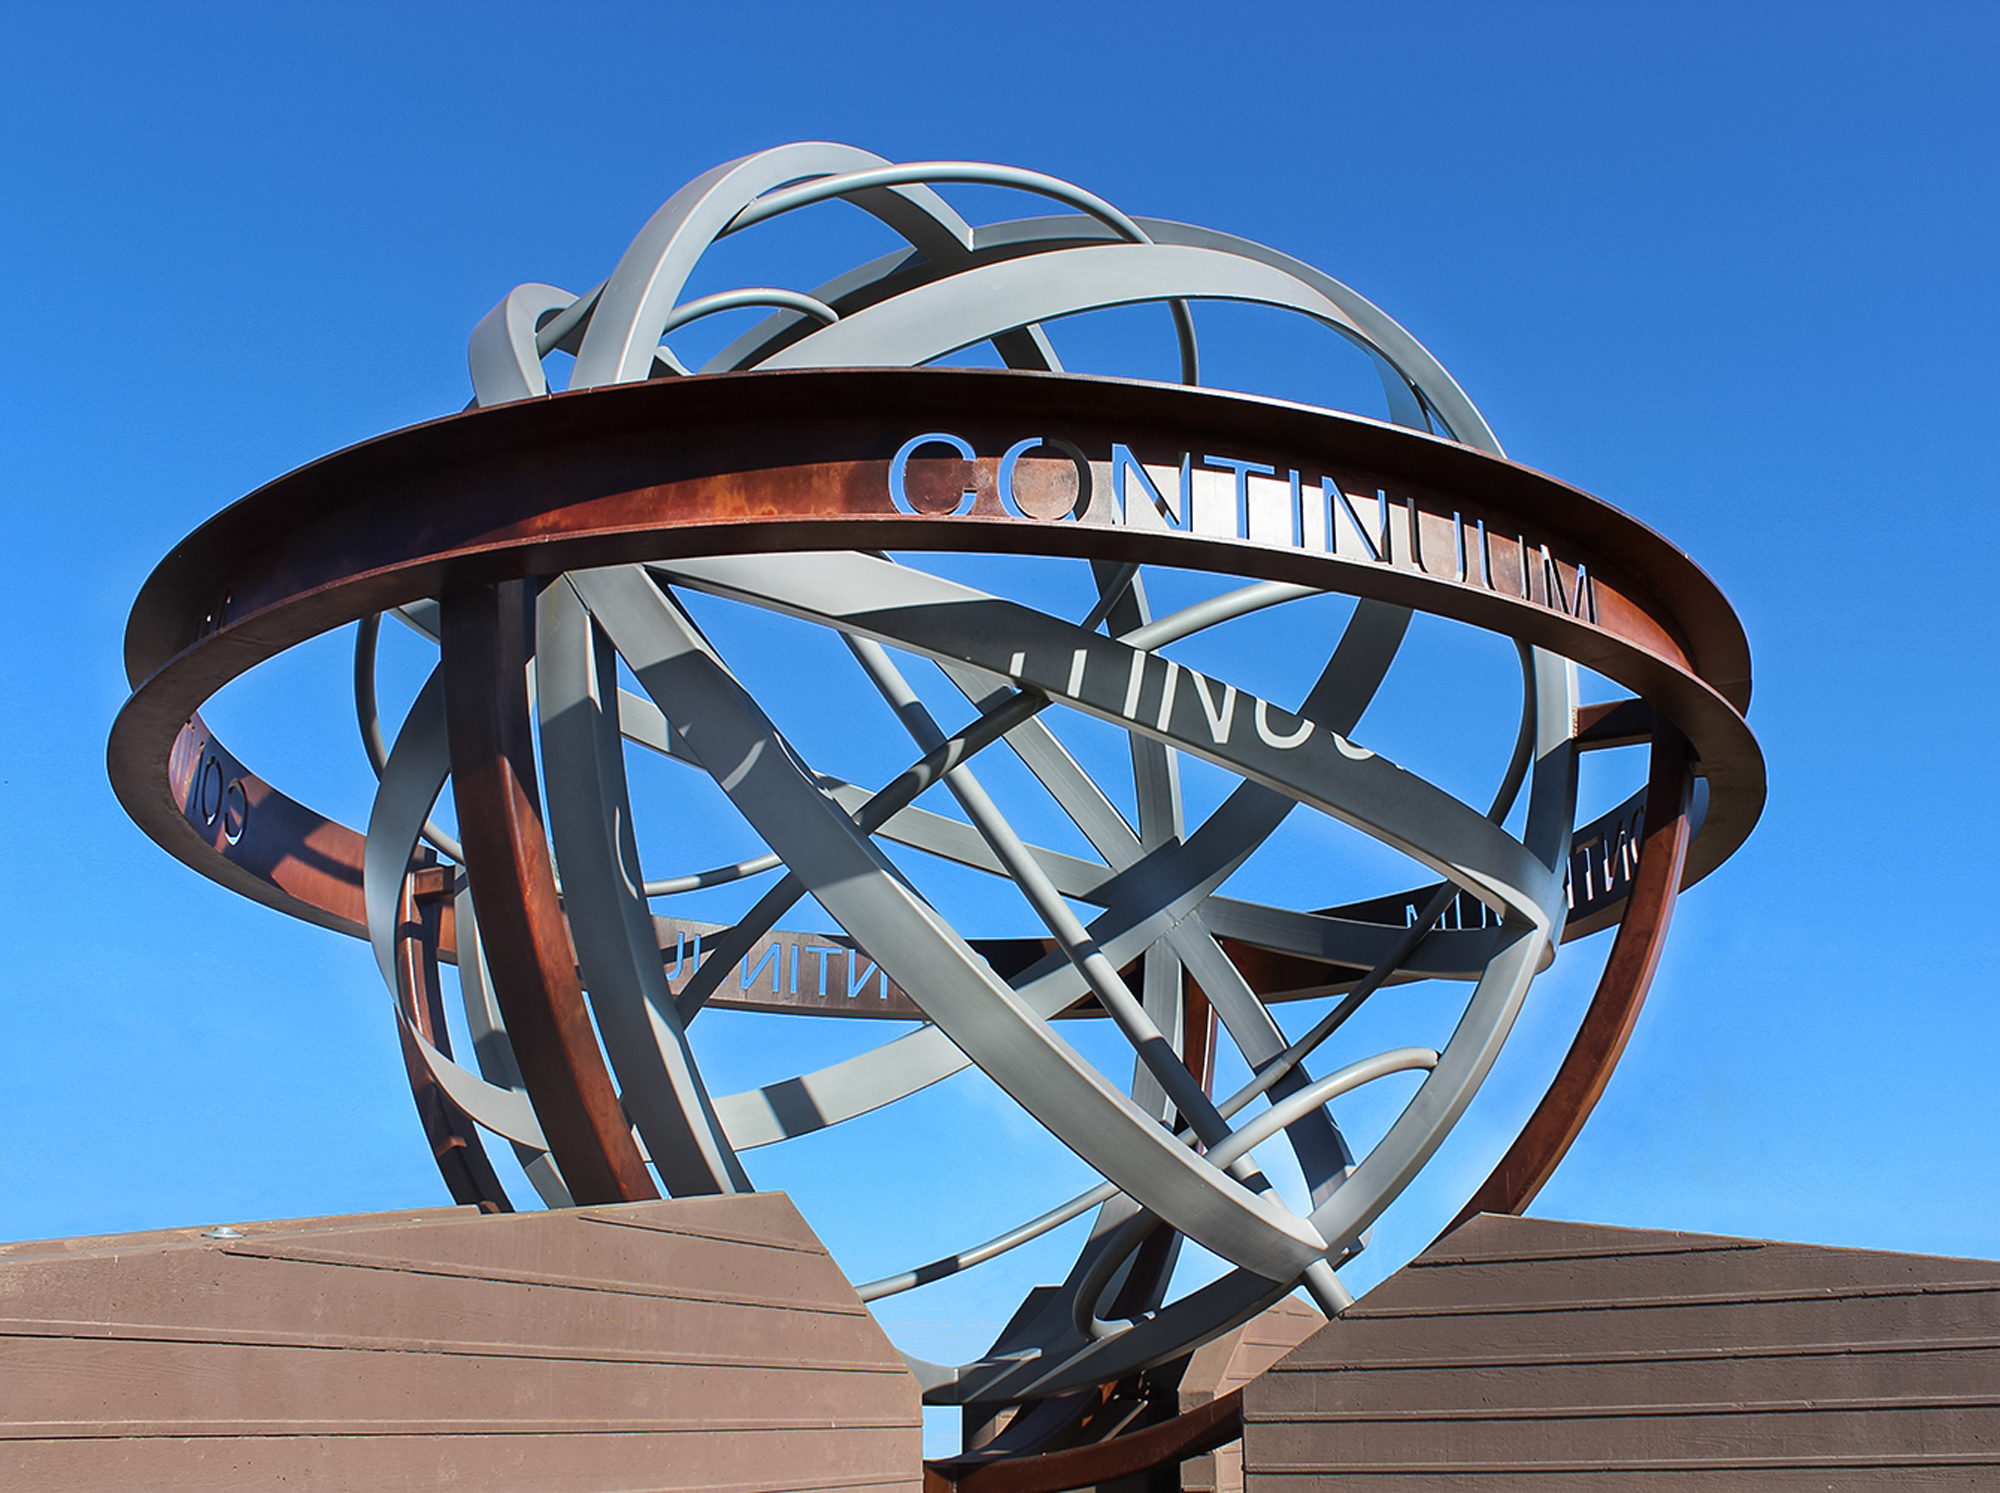 The Continuum globe is the iconic centerpiece for the office park. The 24' radius steel globe is painted with sophisticated finishes to recreate rust and aluminum textures.